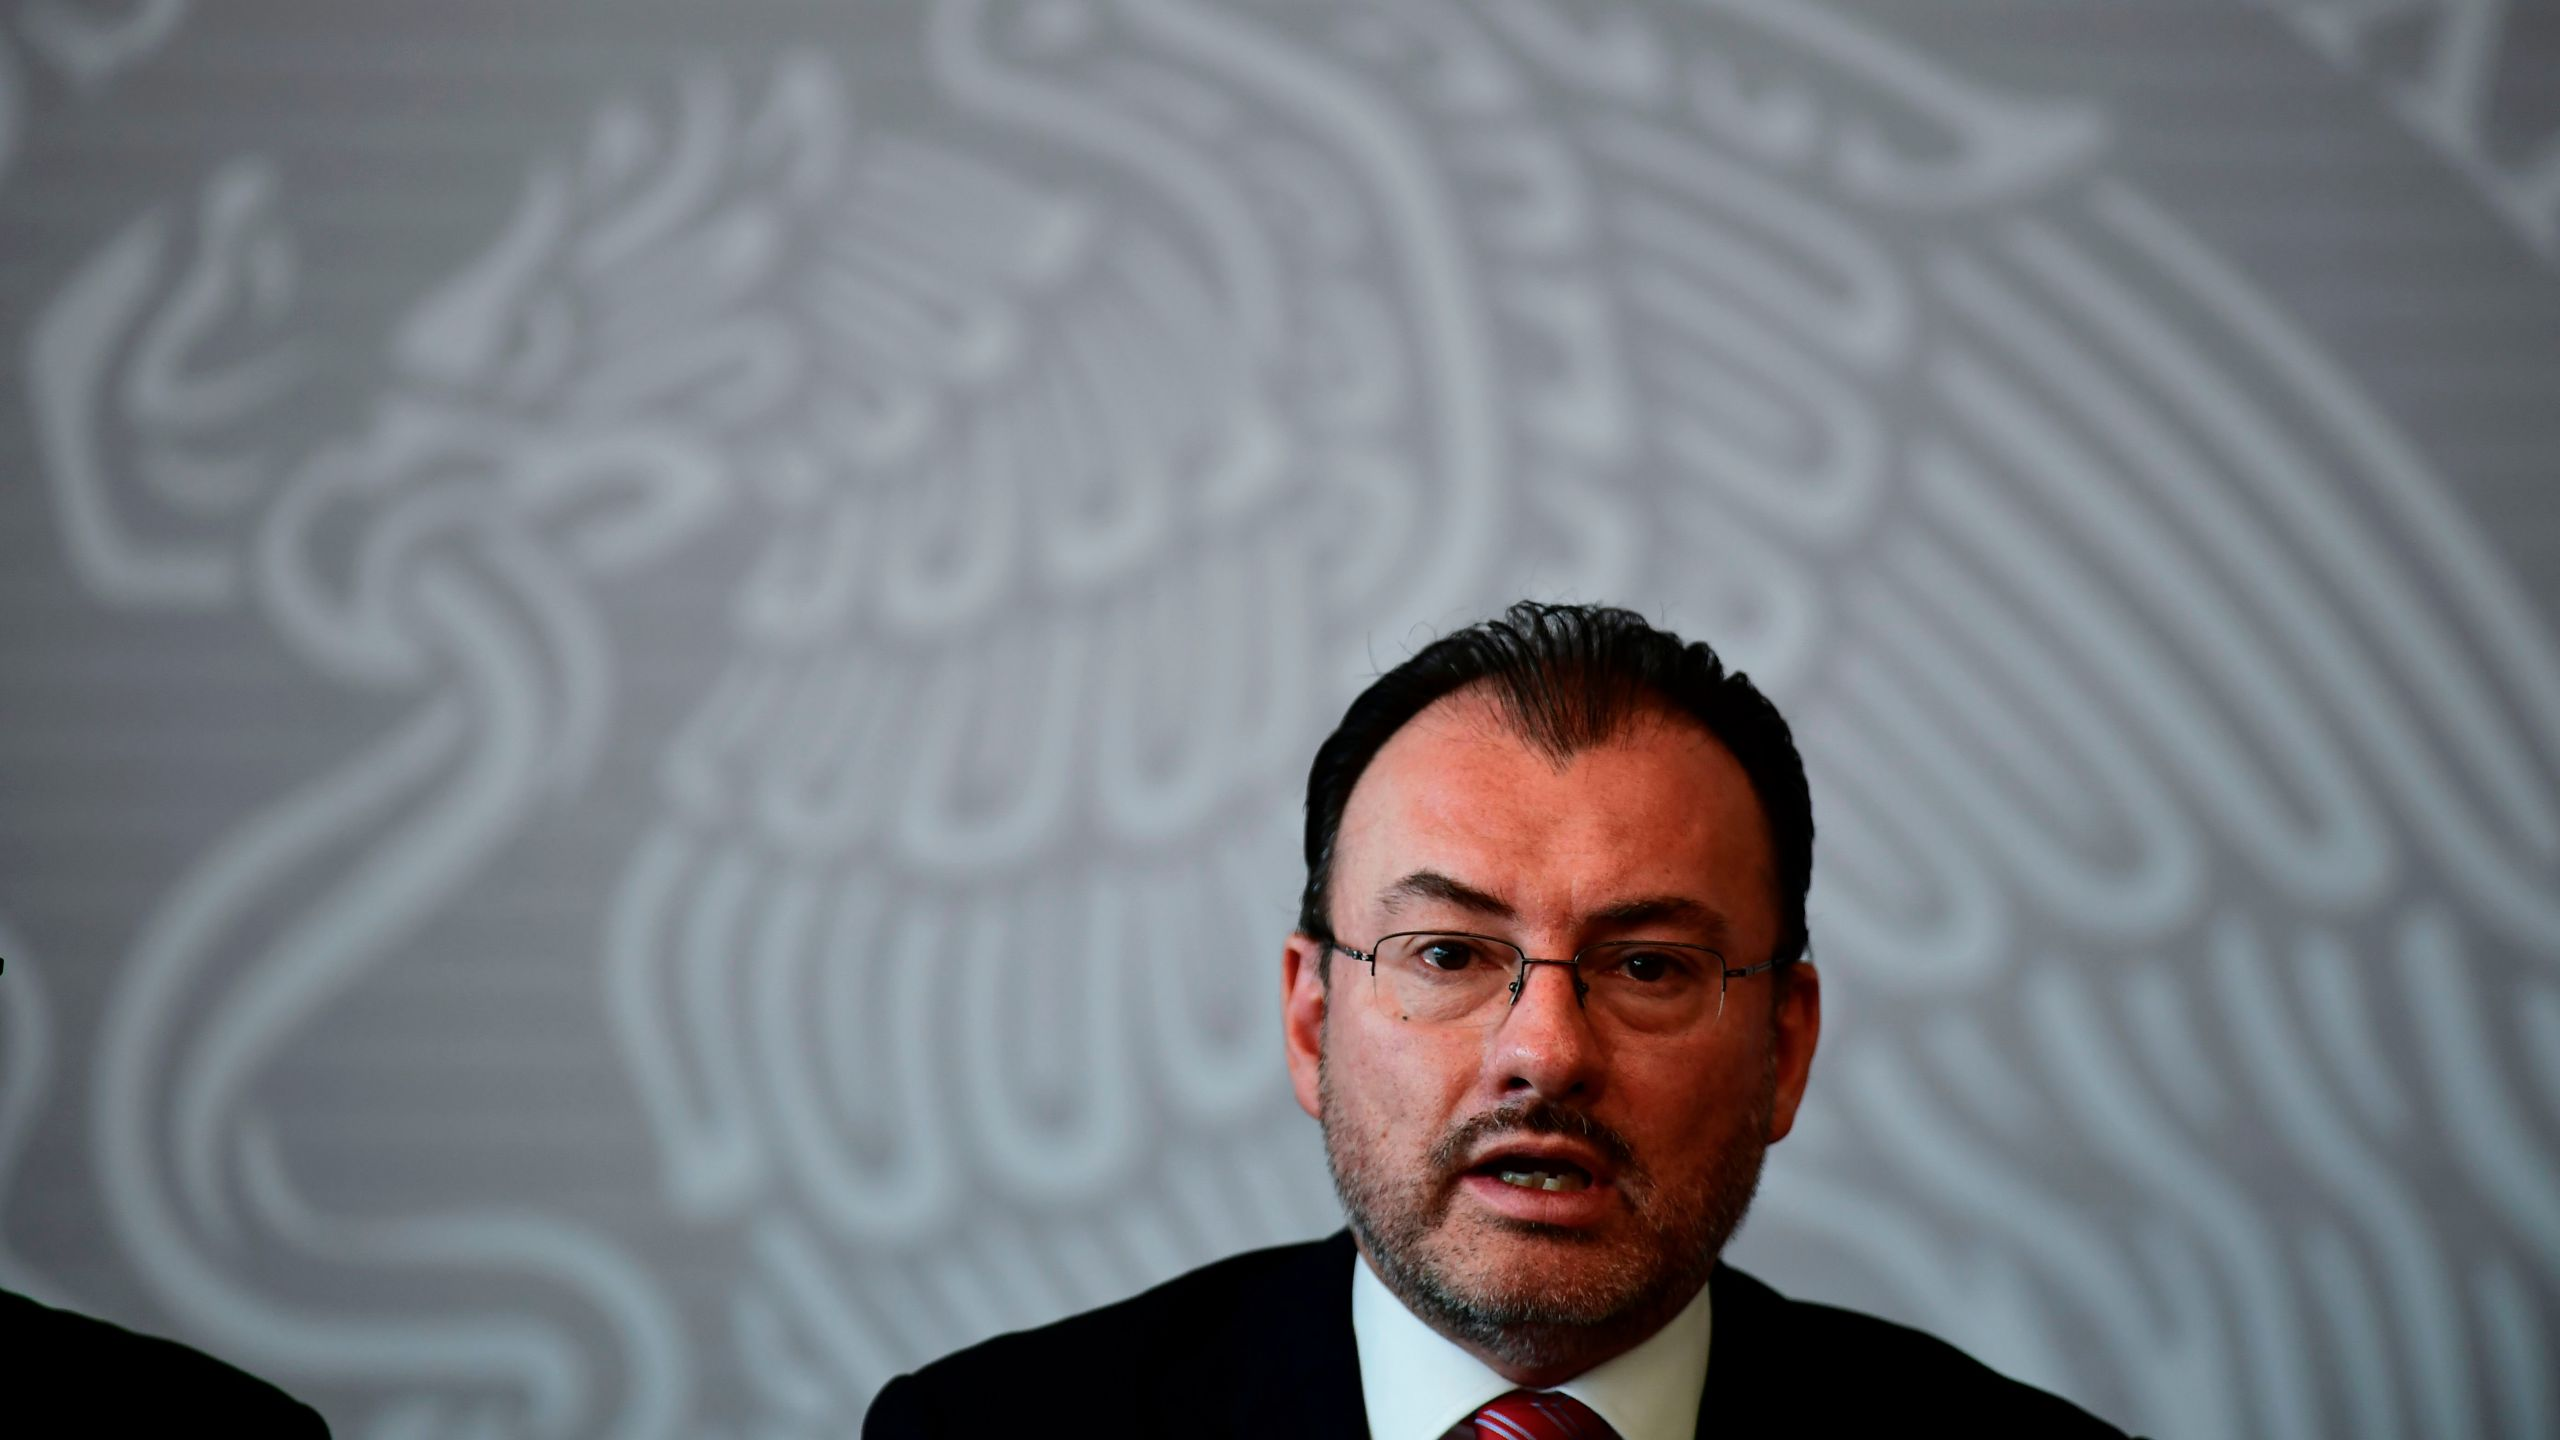 Mexican Foreign Minister Luis Videgaray appears in a press conference at the Ministry in Mexico City on June 19, 2018. (Credit: RONALDO SCHEMIDT/AFP/Getty Images)